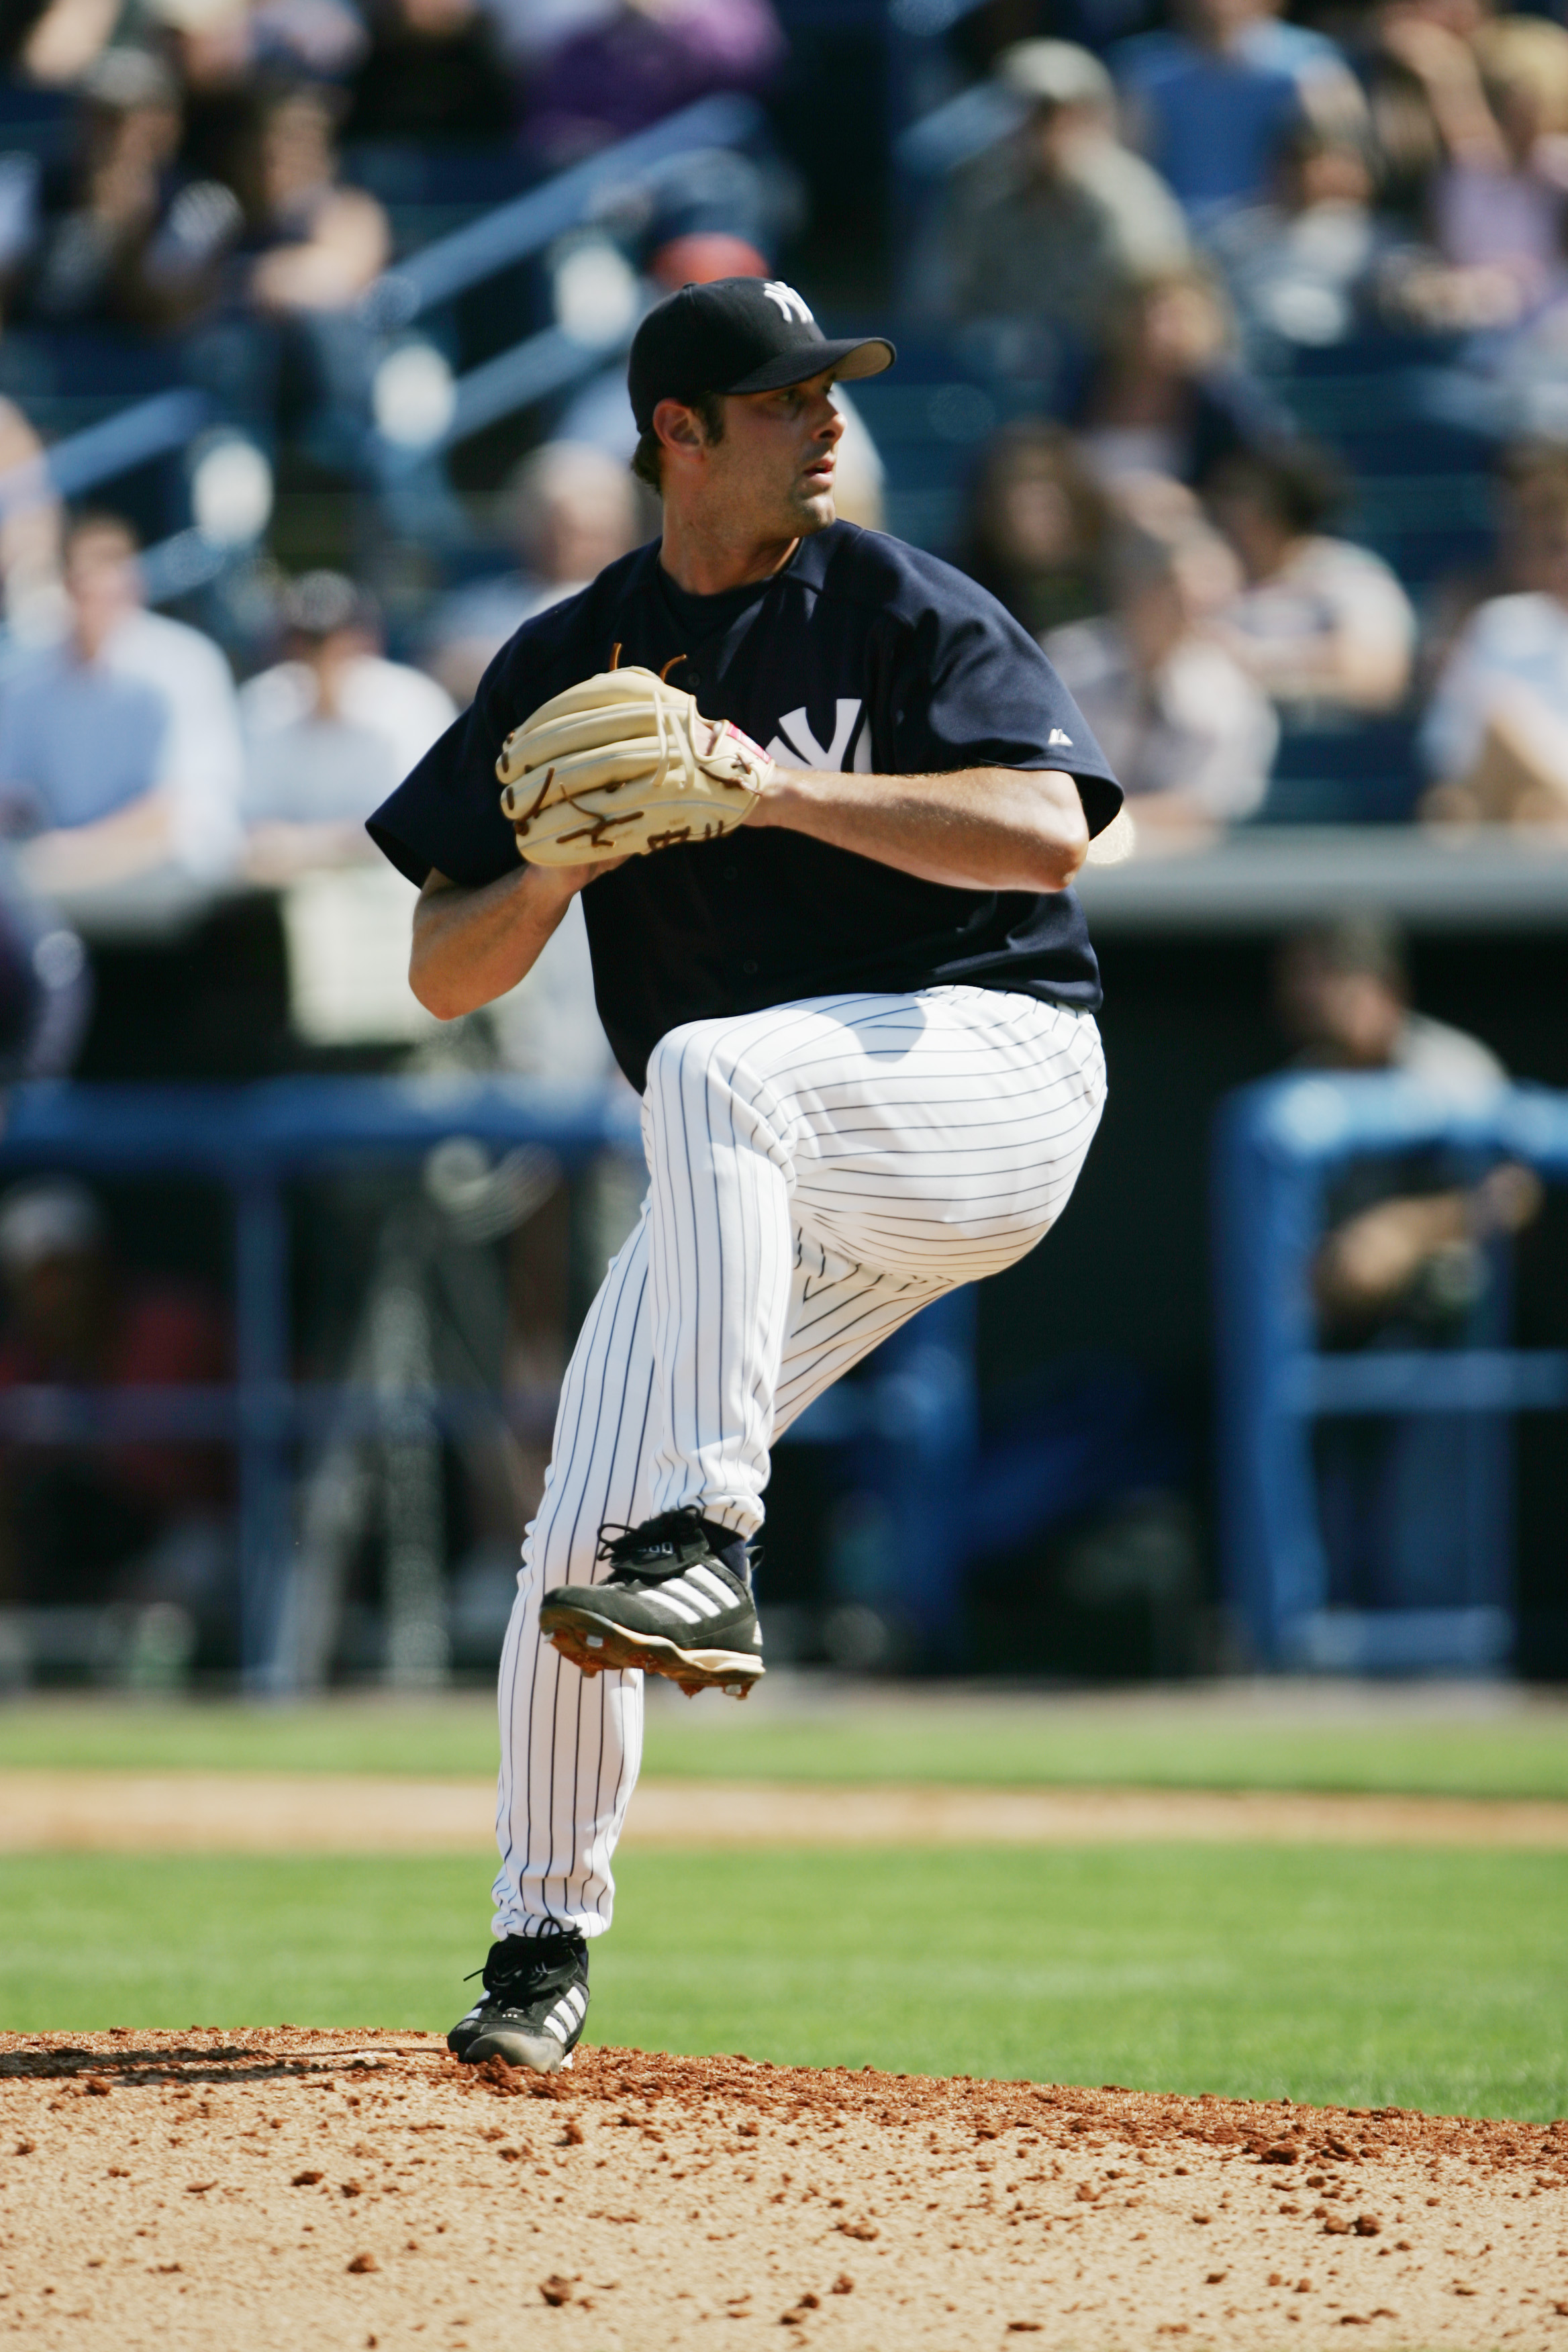 TAMPA, FL - MARCH 7:  Pitcher Steve Karsay #31 of the New York Yankees delivers against the Cleveland Indians during an MLB Spring Training game at Legends Field on March 7, 2005 in Tampa, Florida. The Indians defeated the Yankees 3-1. (Photo by Doug Pens